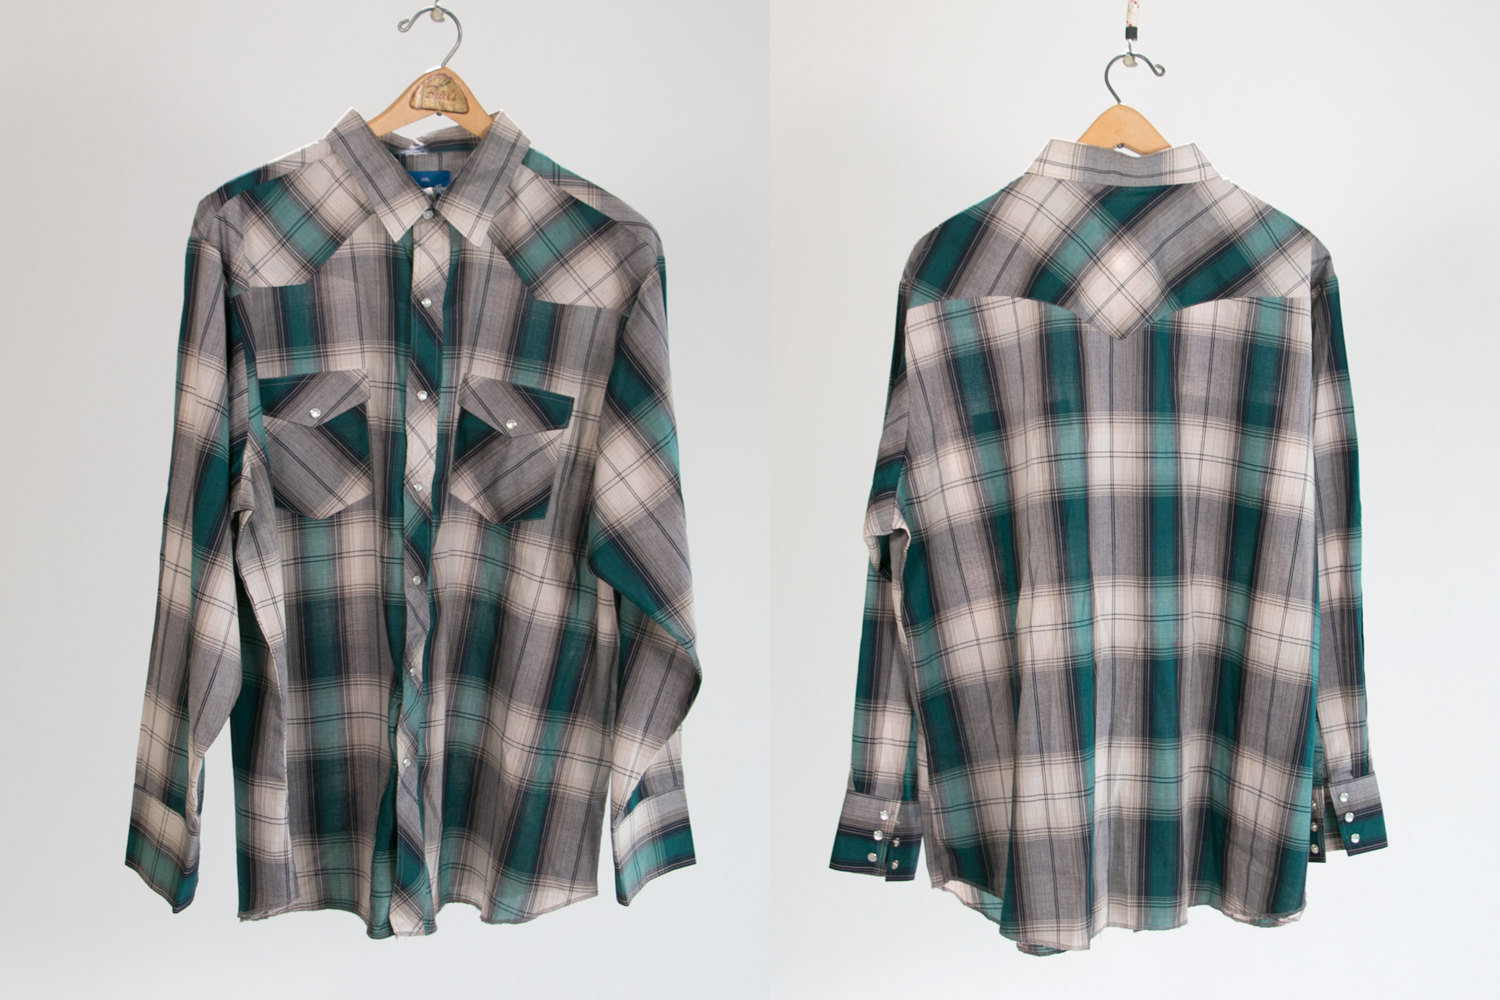 Vintage 1980's Wrangler Plaid Country Western Shirt - Men's XXL, Long Sleeve, Pearl Snap Buttons - Indie, Folk, Hipster, Trucker